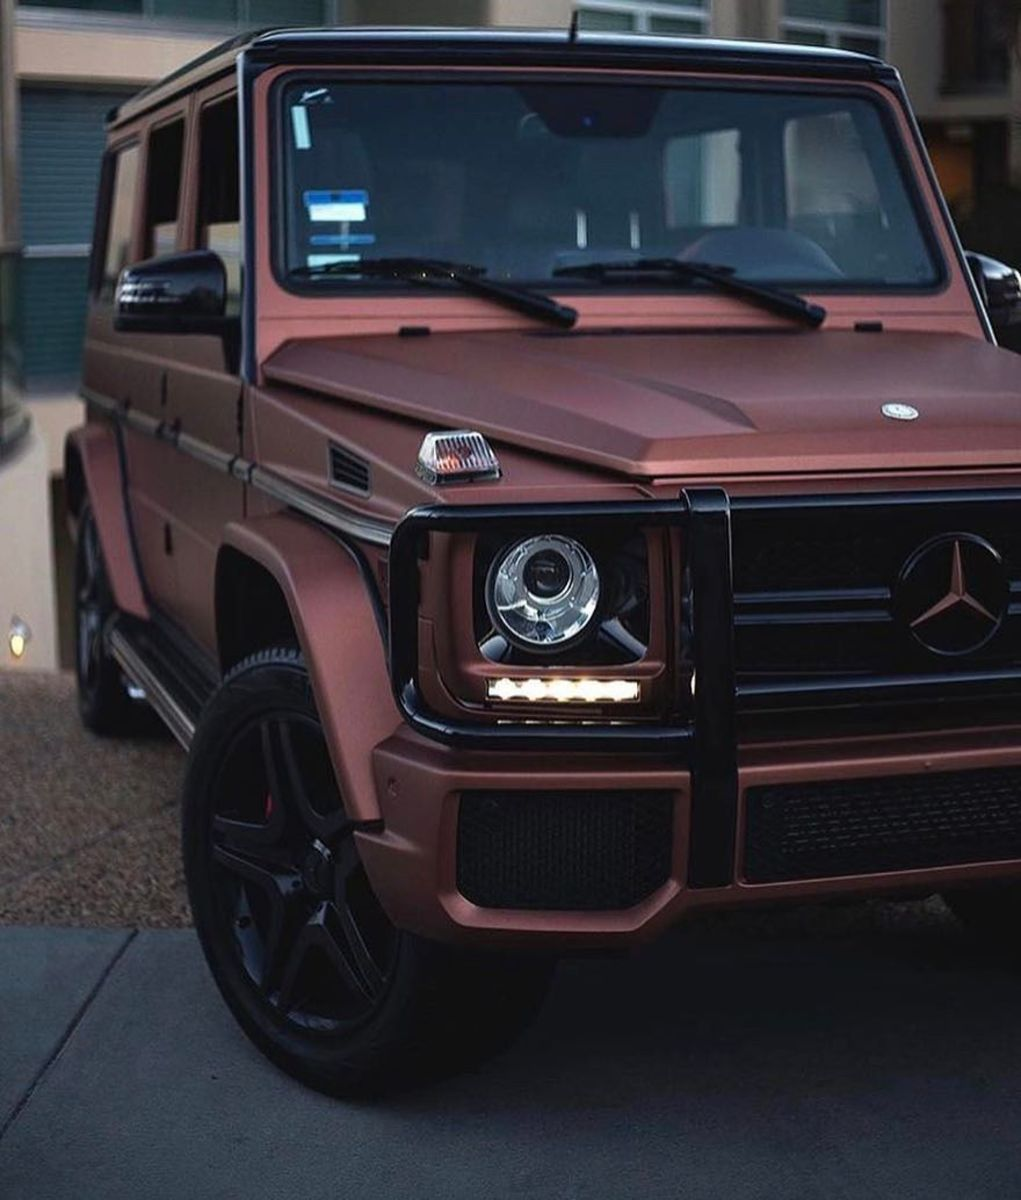 Best 25 mercedes suv ideas only on pinterest mercedes benz suv mercedes benz and mercedes benz cars